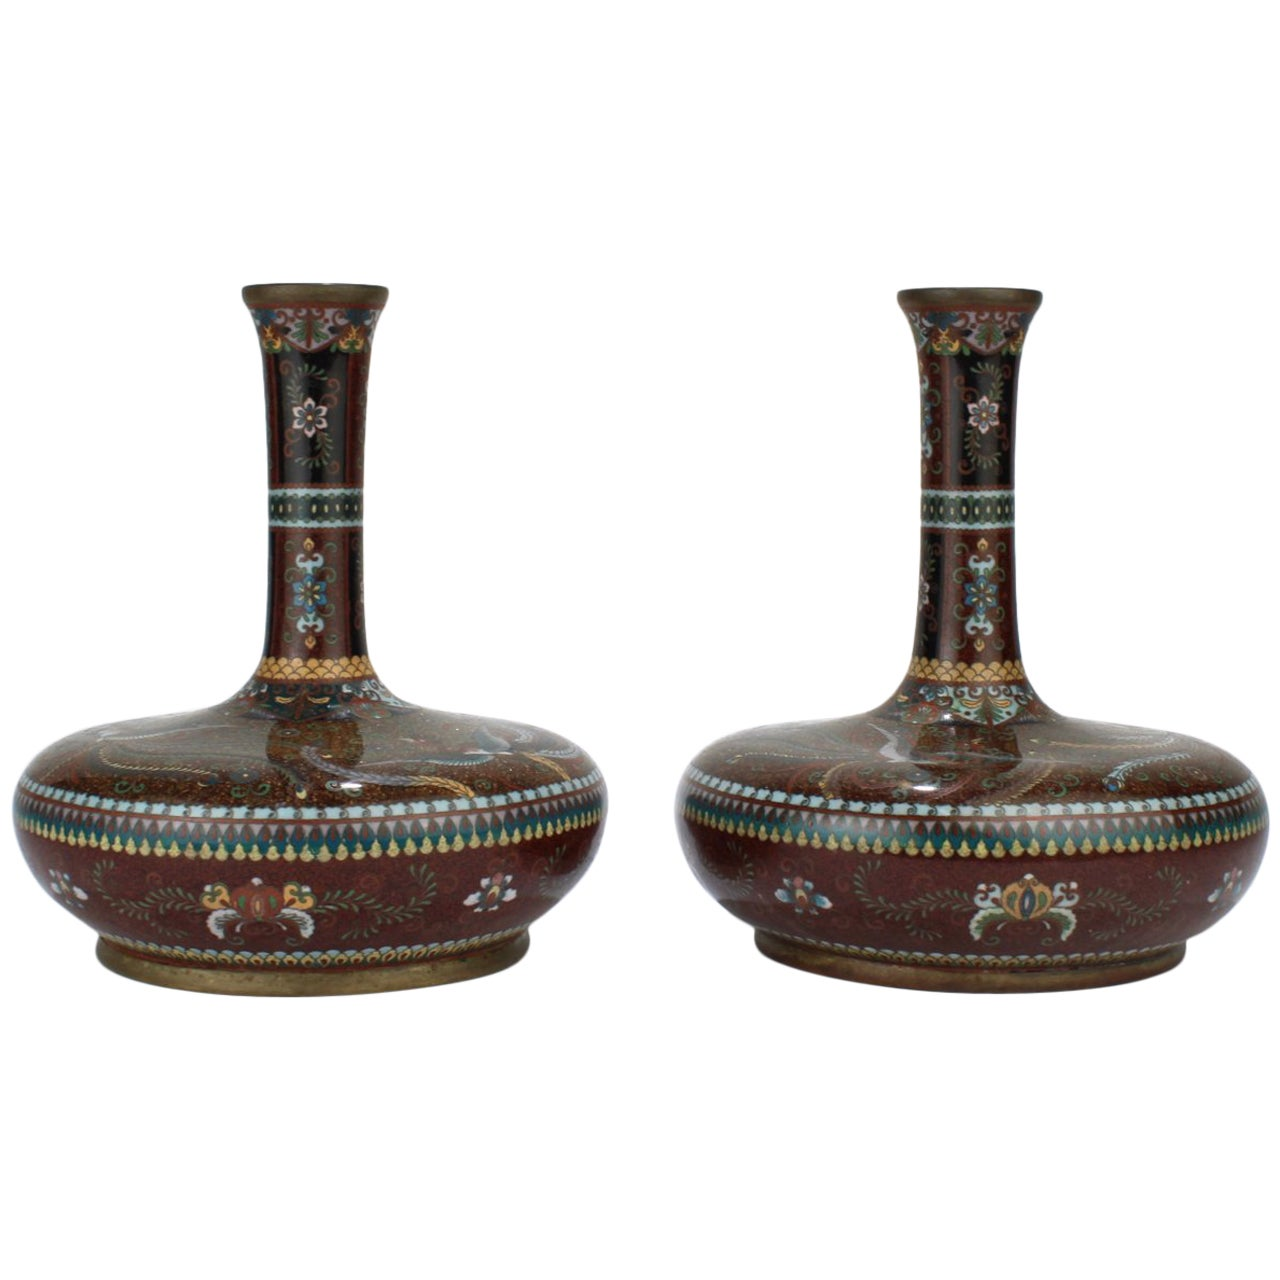 Pair of Large Antique Japanese Meiji Period Cloisonne Vases